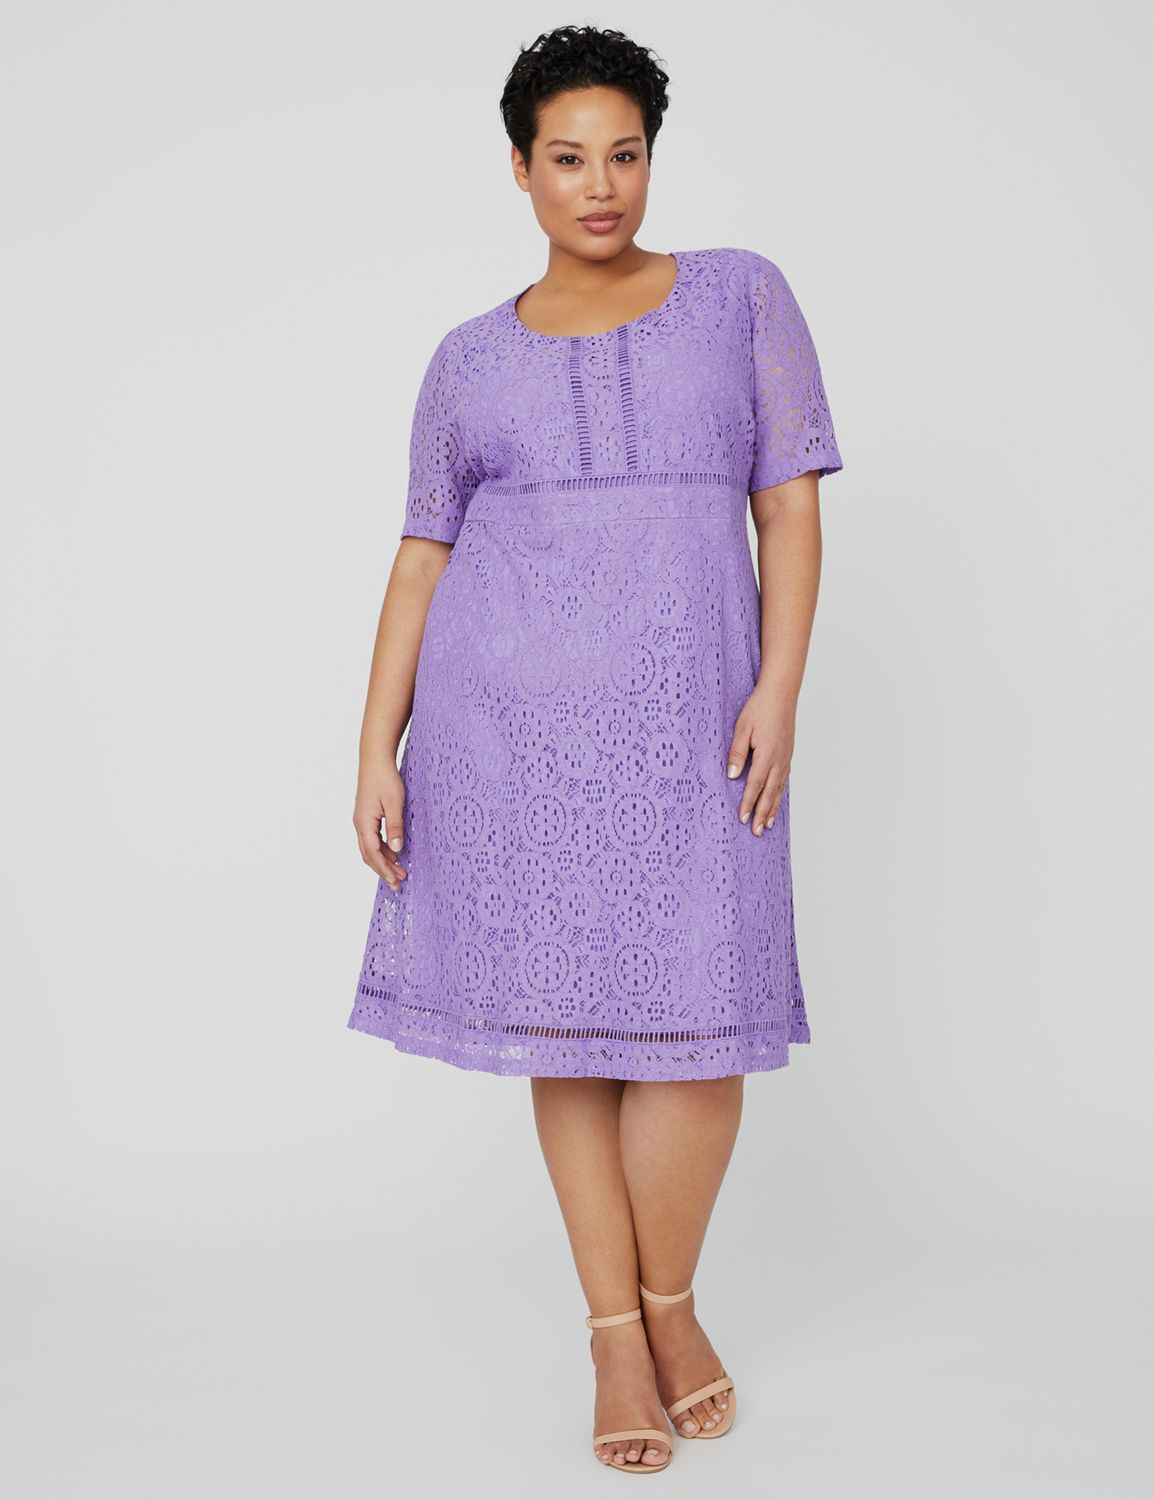 Violet Lace Dress 1091036 A Line Lace Dress with Trim MP-300100584